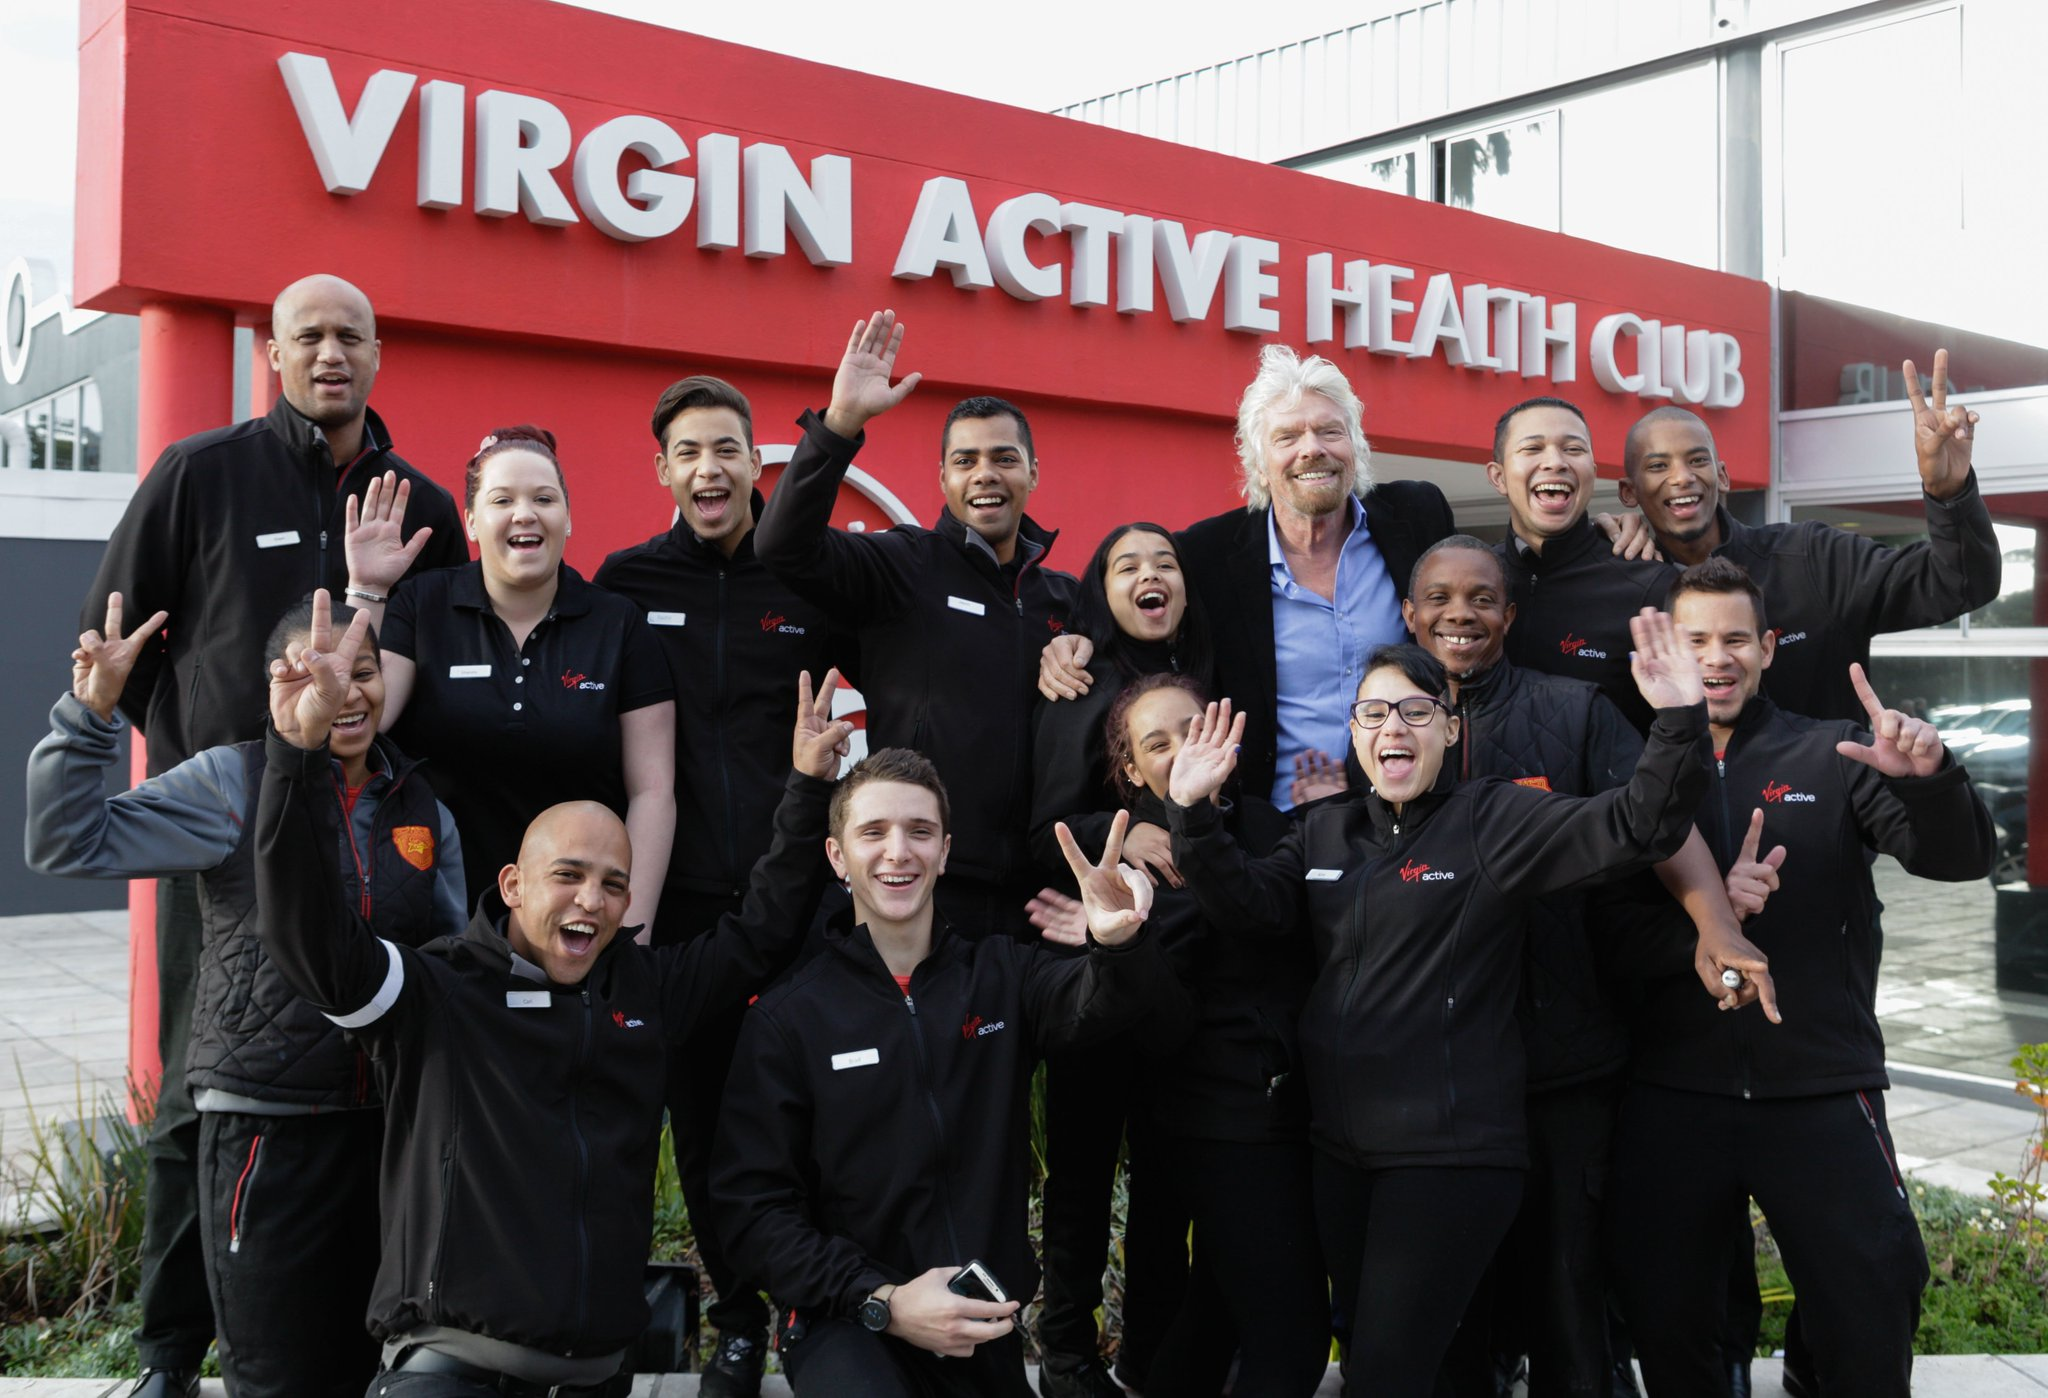 How a phone call while I was in the bath led to launching @VirginActiveSA: https://t.co/Zx6MLBCrnj https://t.co/2tmeDGEbYO